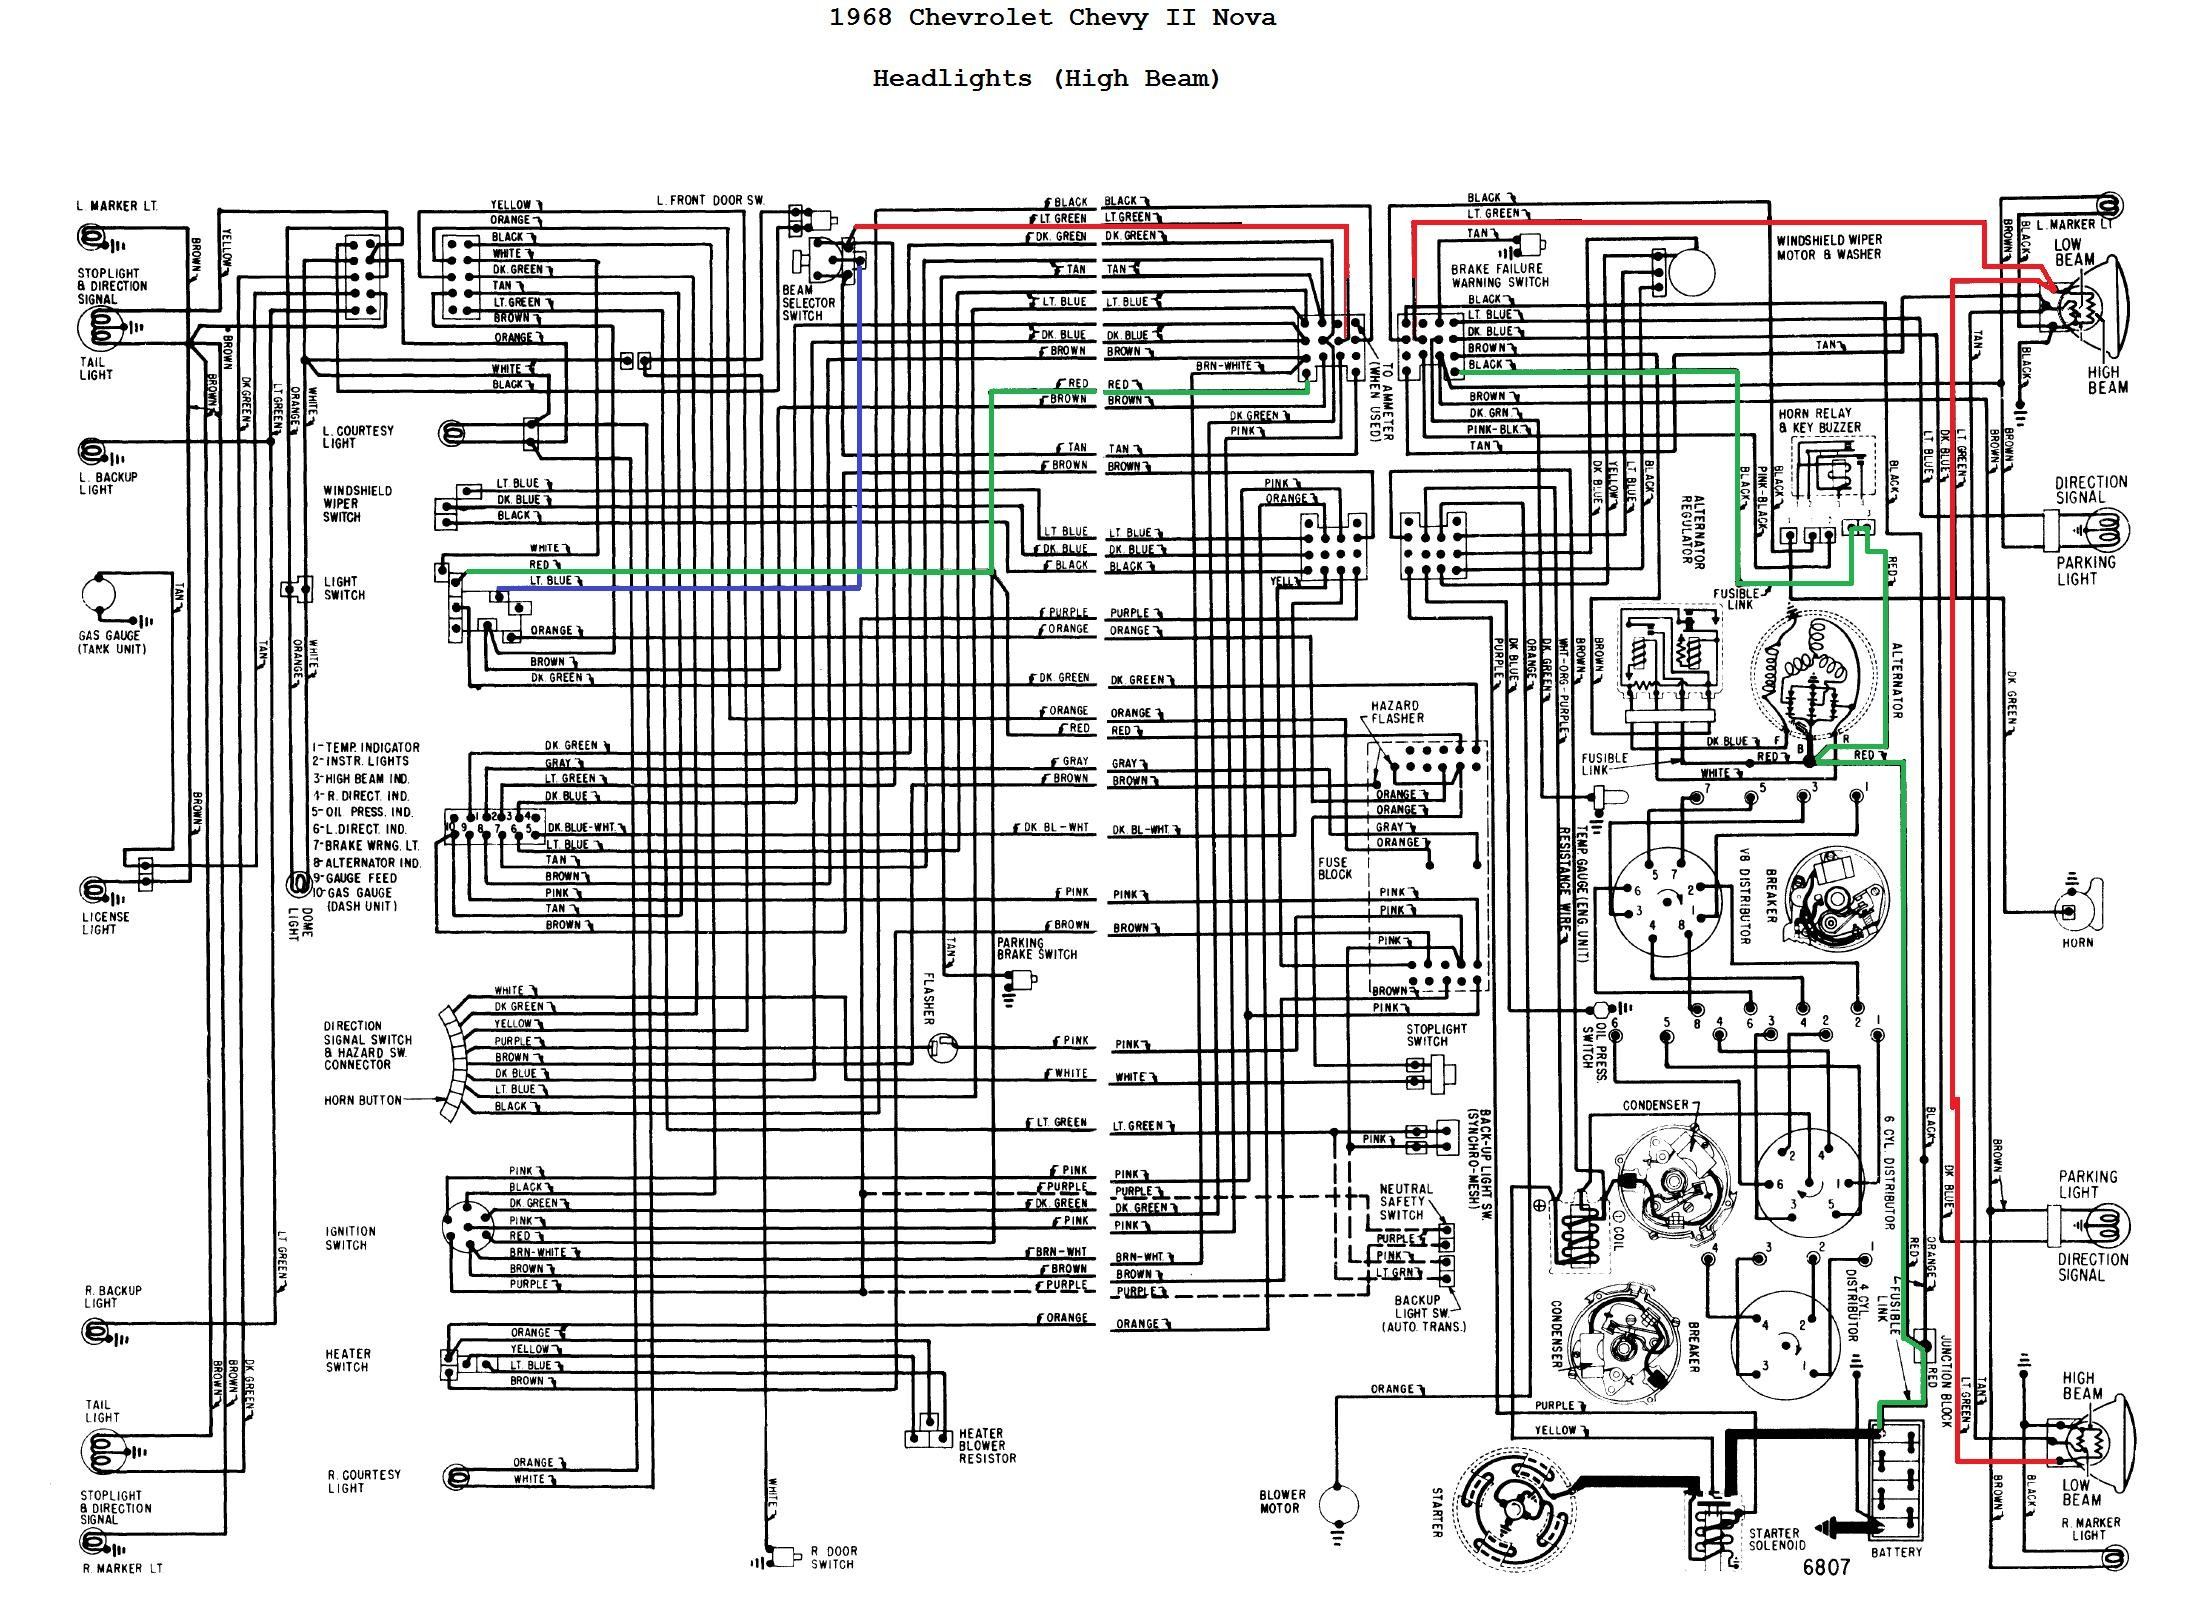 2004 Infiniti G35 Engine Diagram Infiniti G35 Engine Diagram Further 324  Oldsmobile Engine Diagram Of 2004